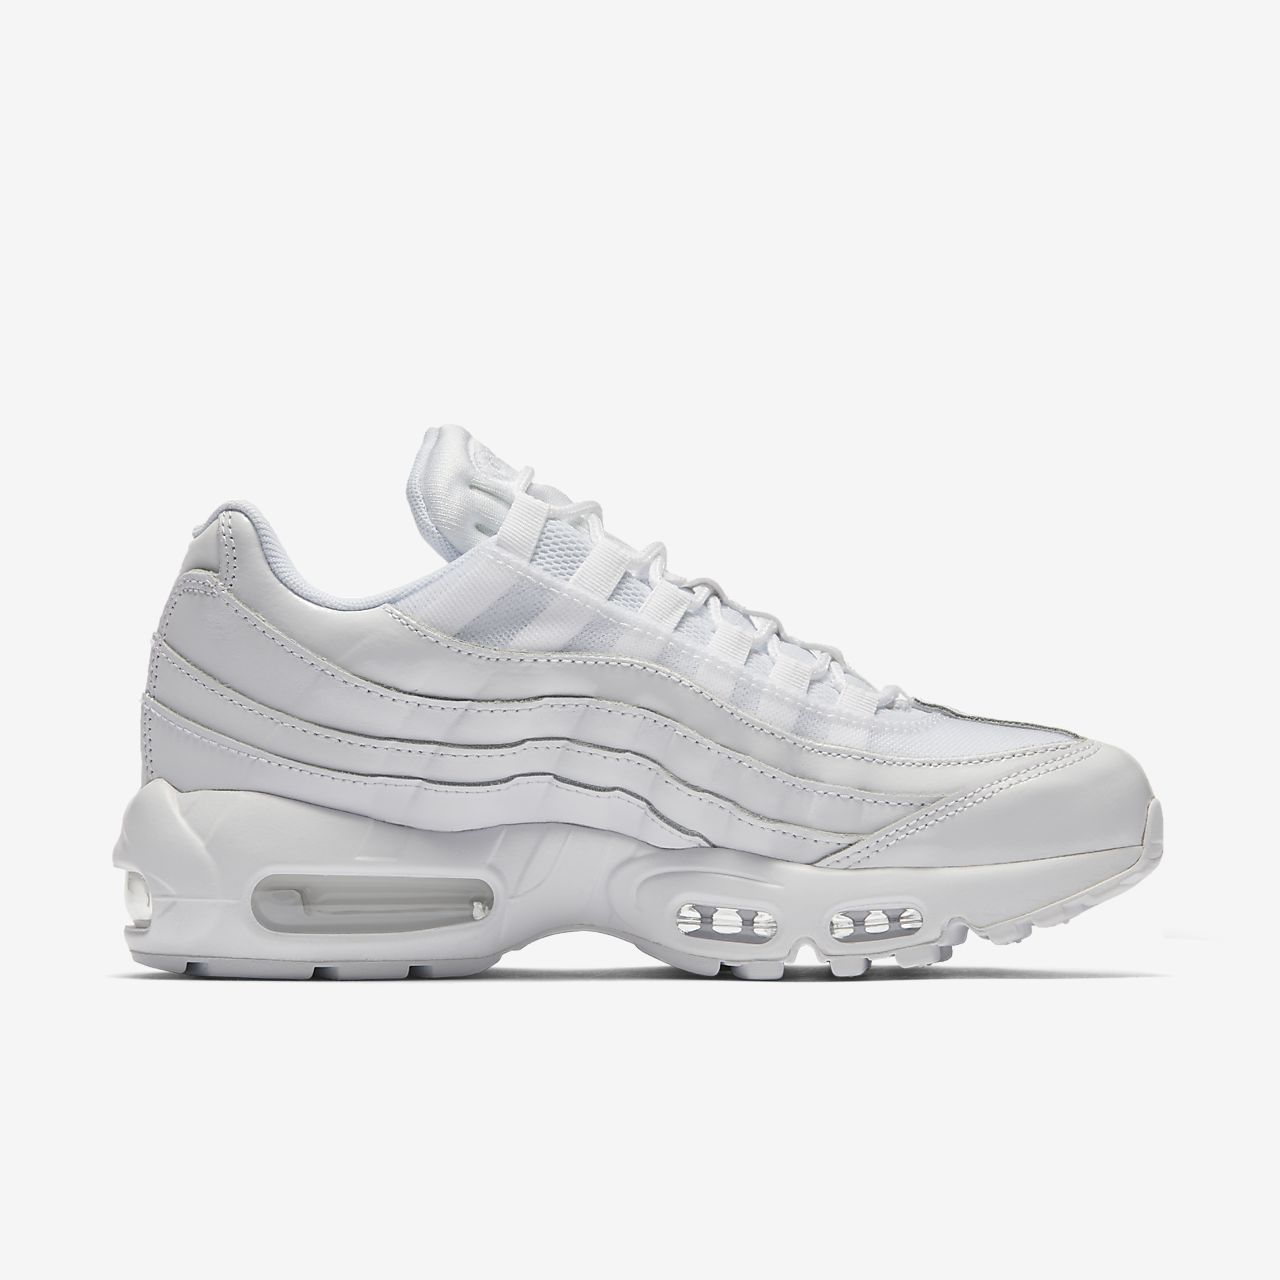 nike air max 95 dames zwart wit